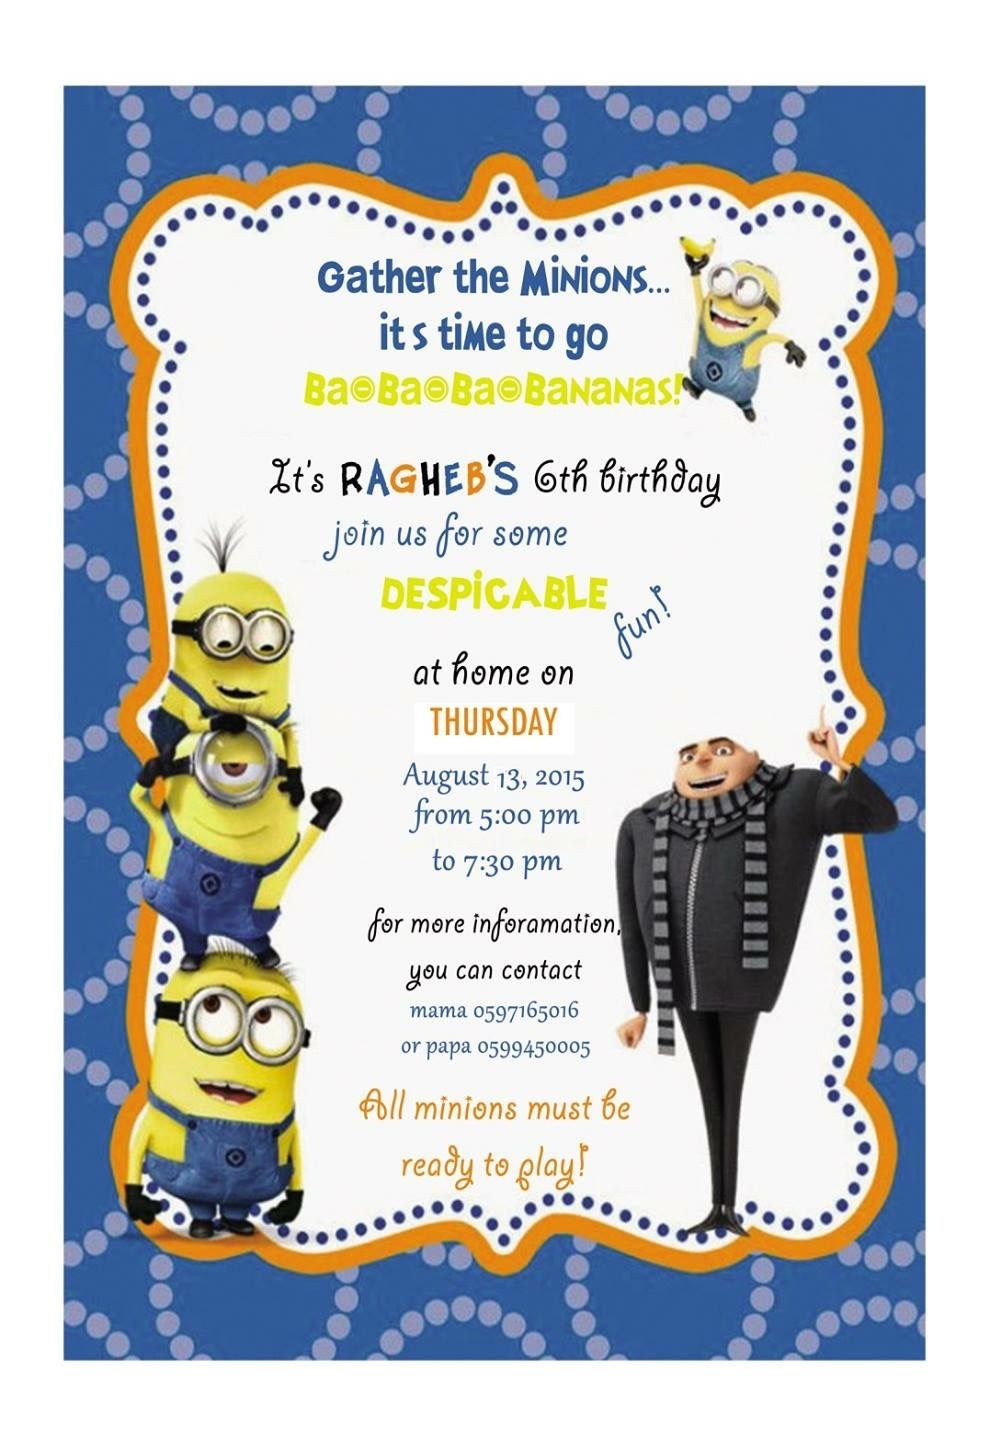 Despicable me birthday party -- invitation card | Minions Birthday ...